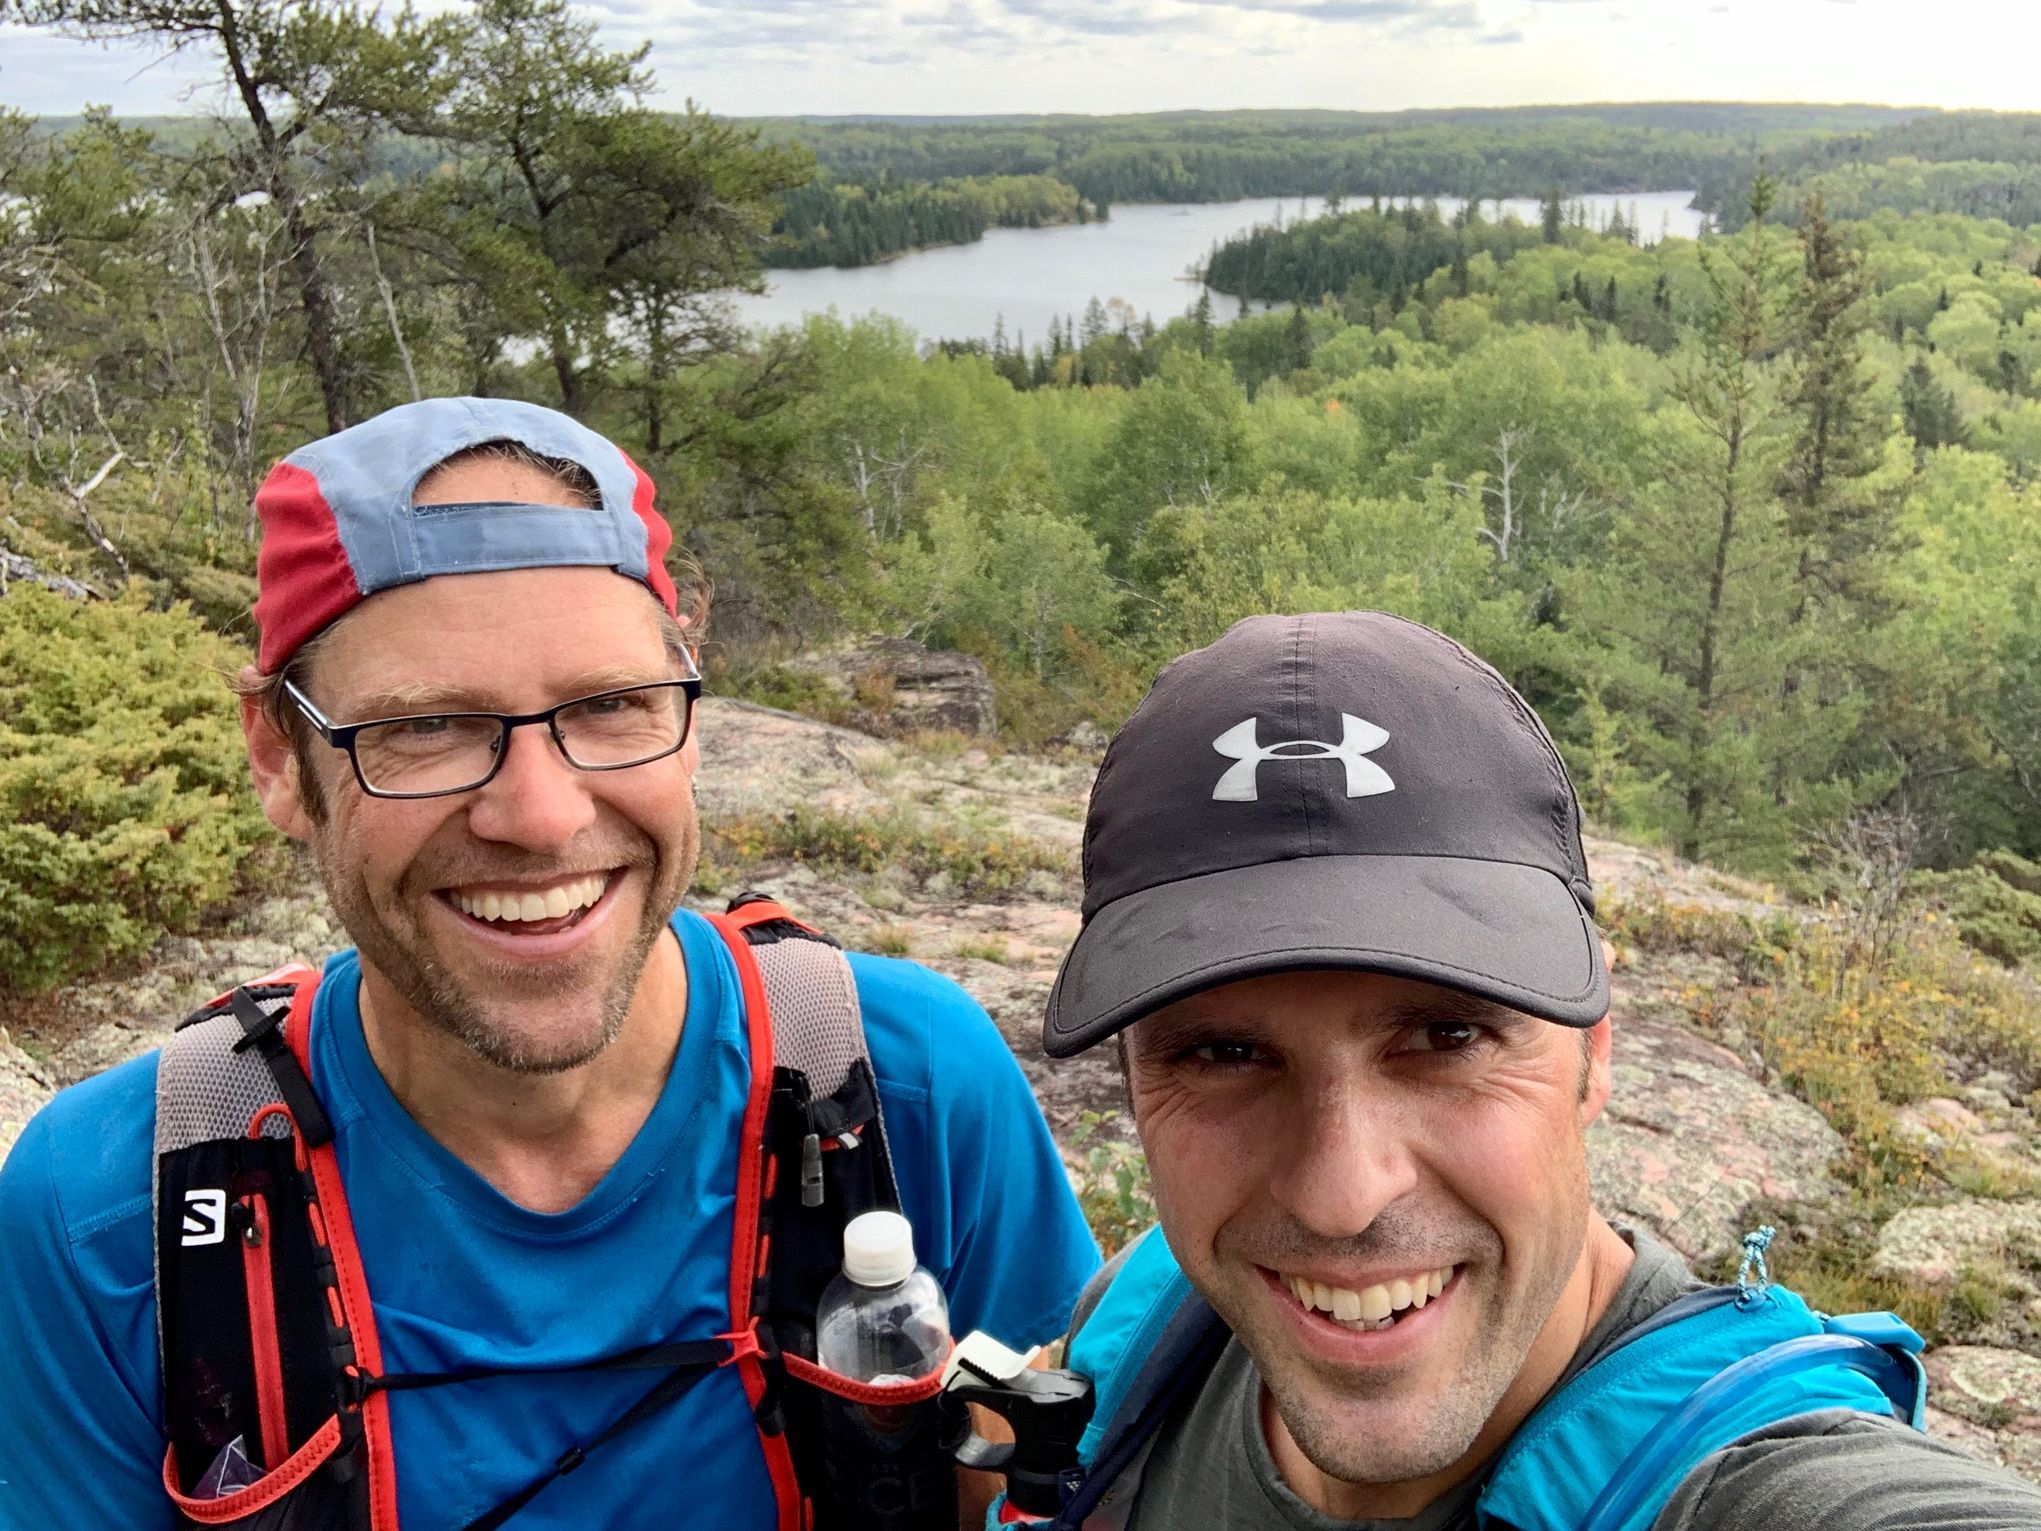 Gord Funk (left) and Justin Feilberg, traversing the Mantario Trail in Whiteshell Provincial Park.